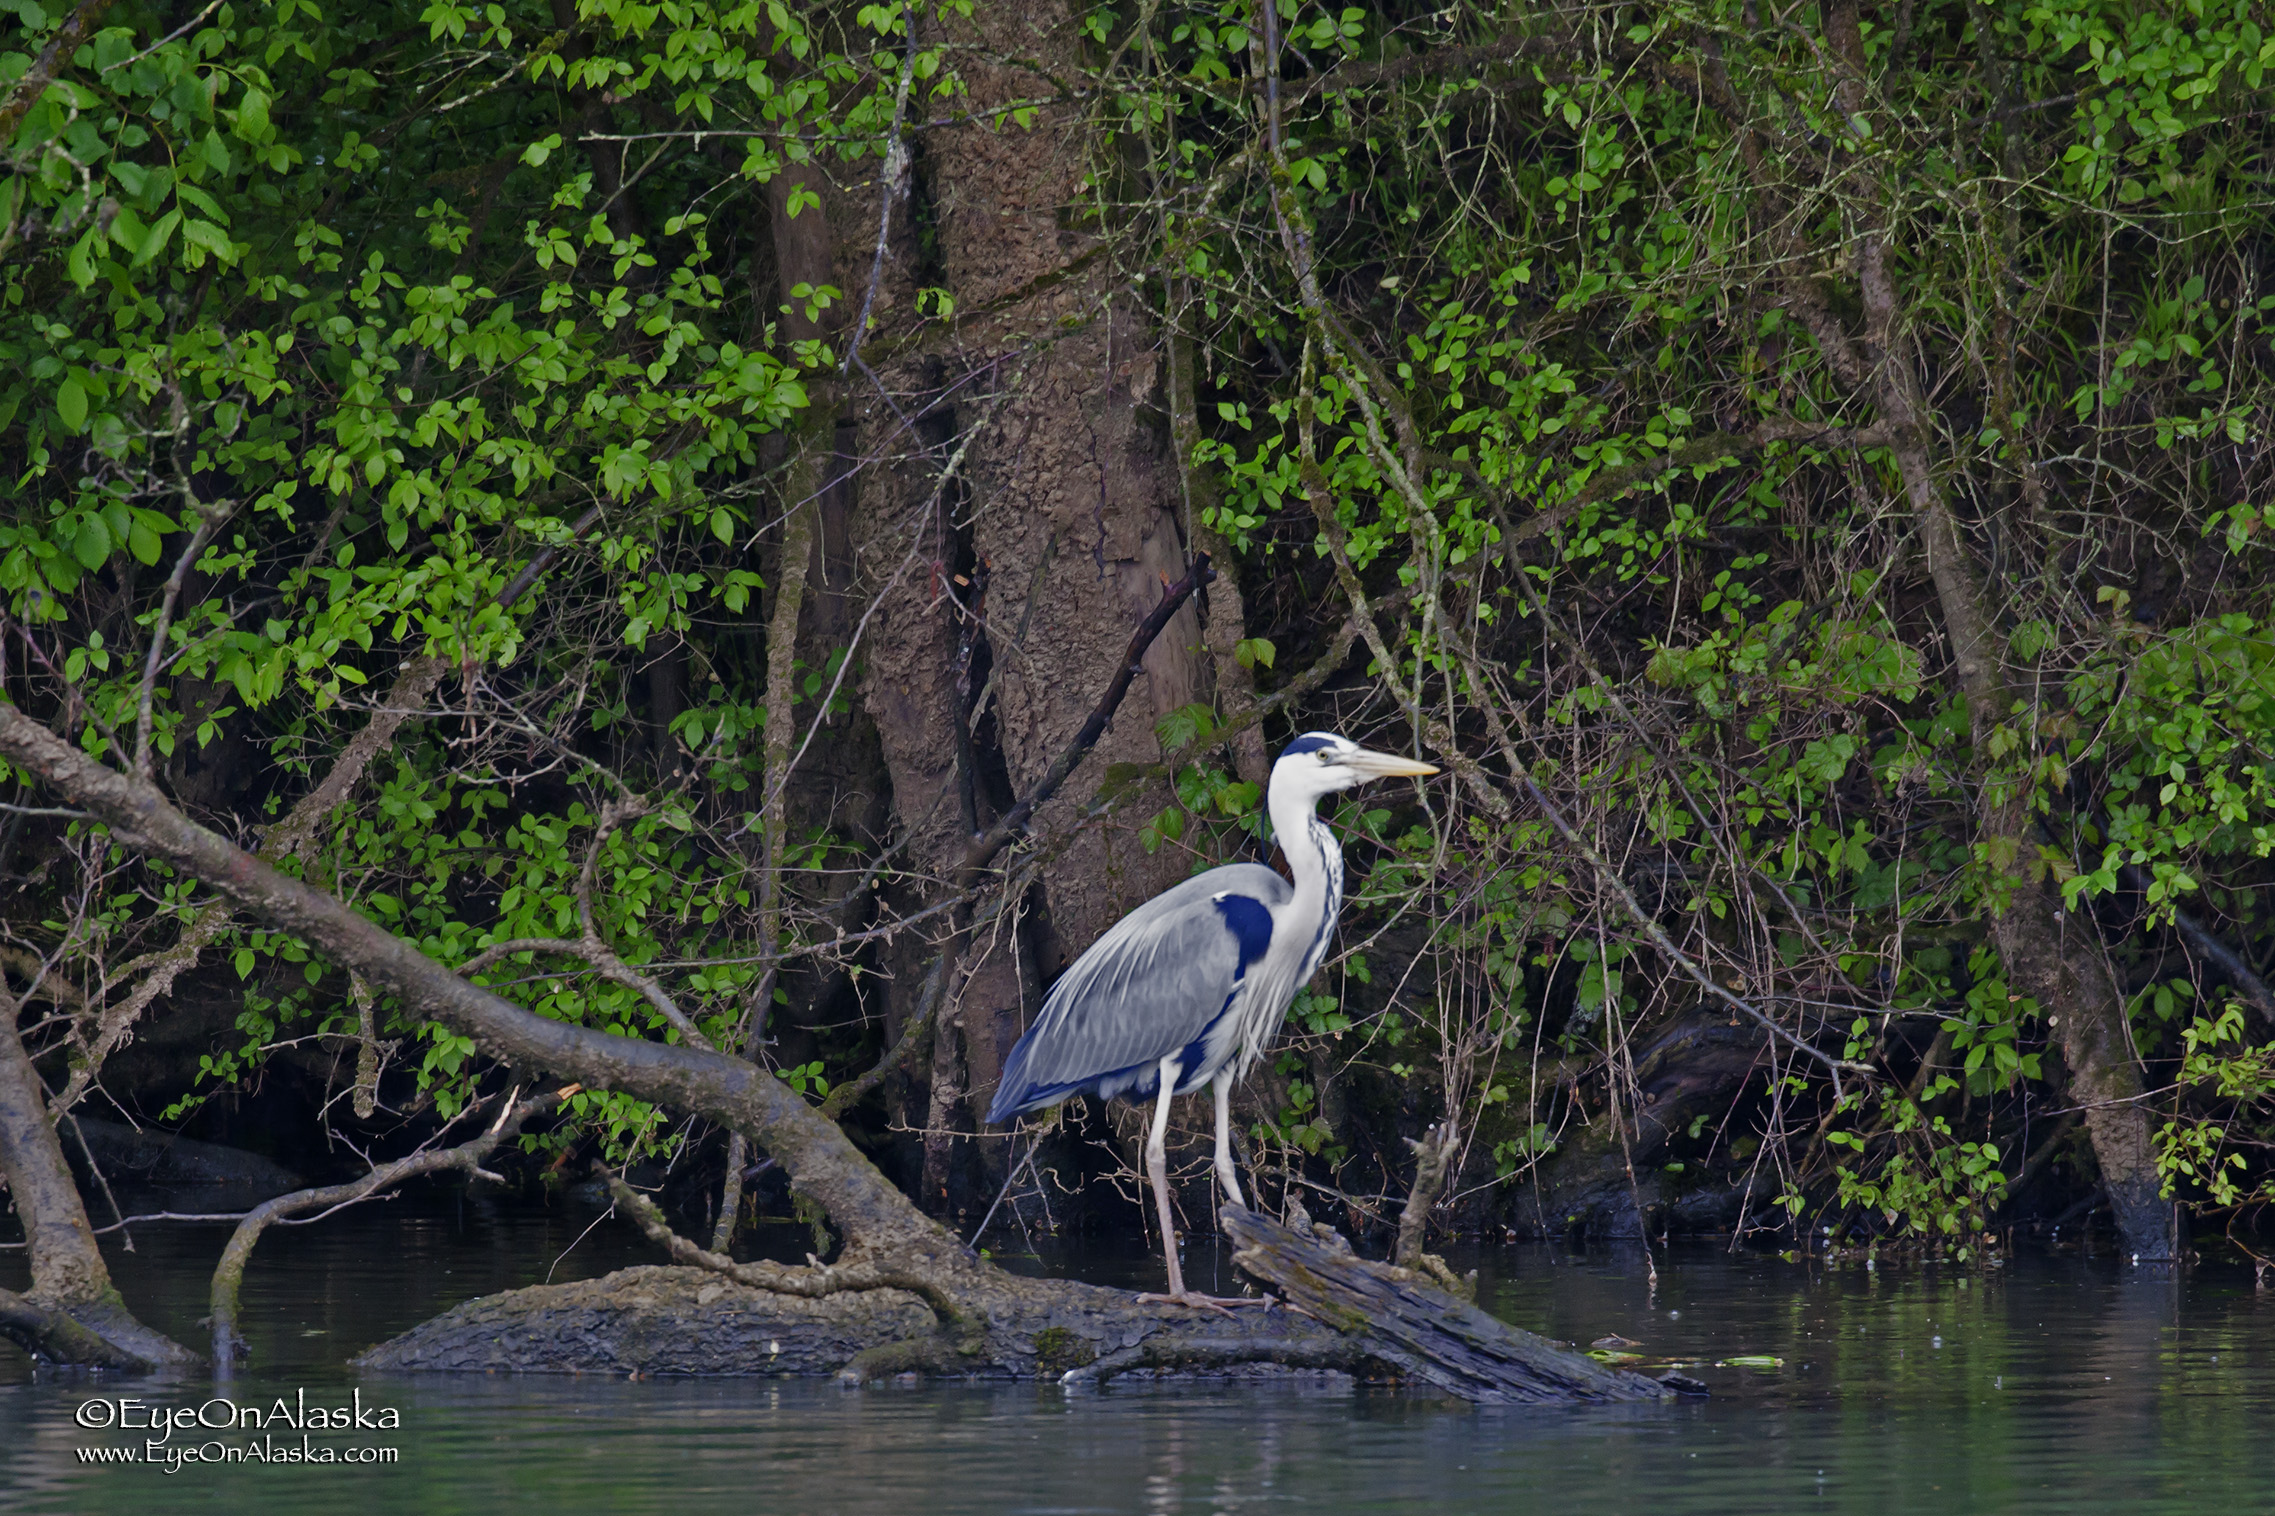 Herons all over the place!